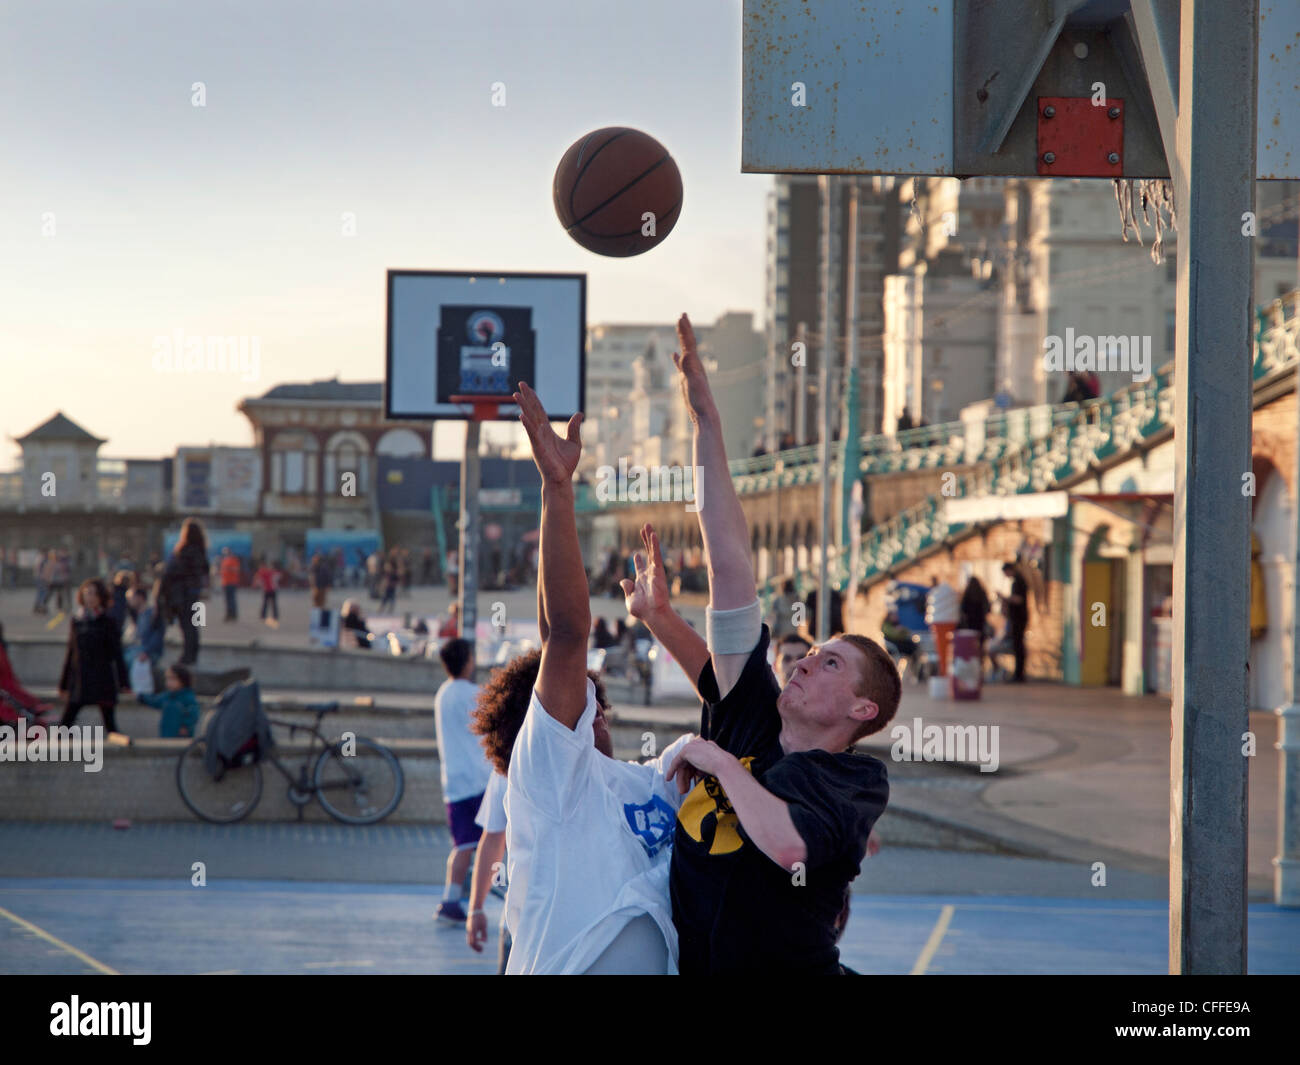 Basketball on the Brighton seafront court - Stock Image